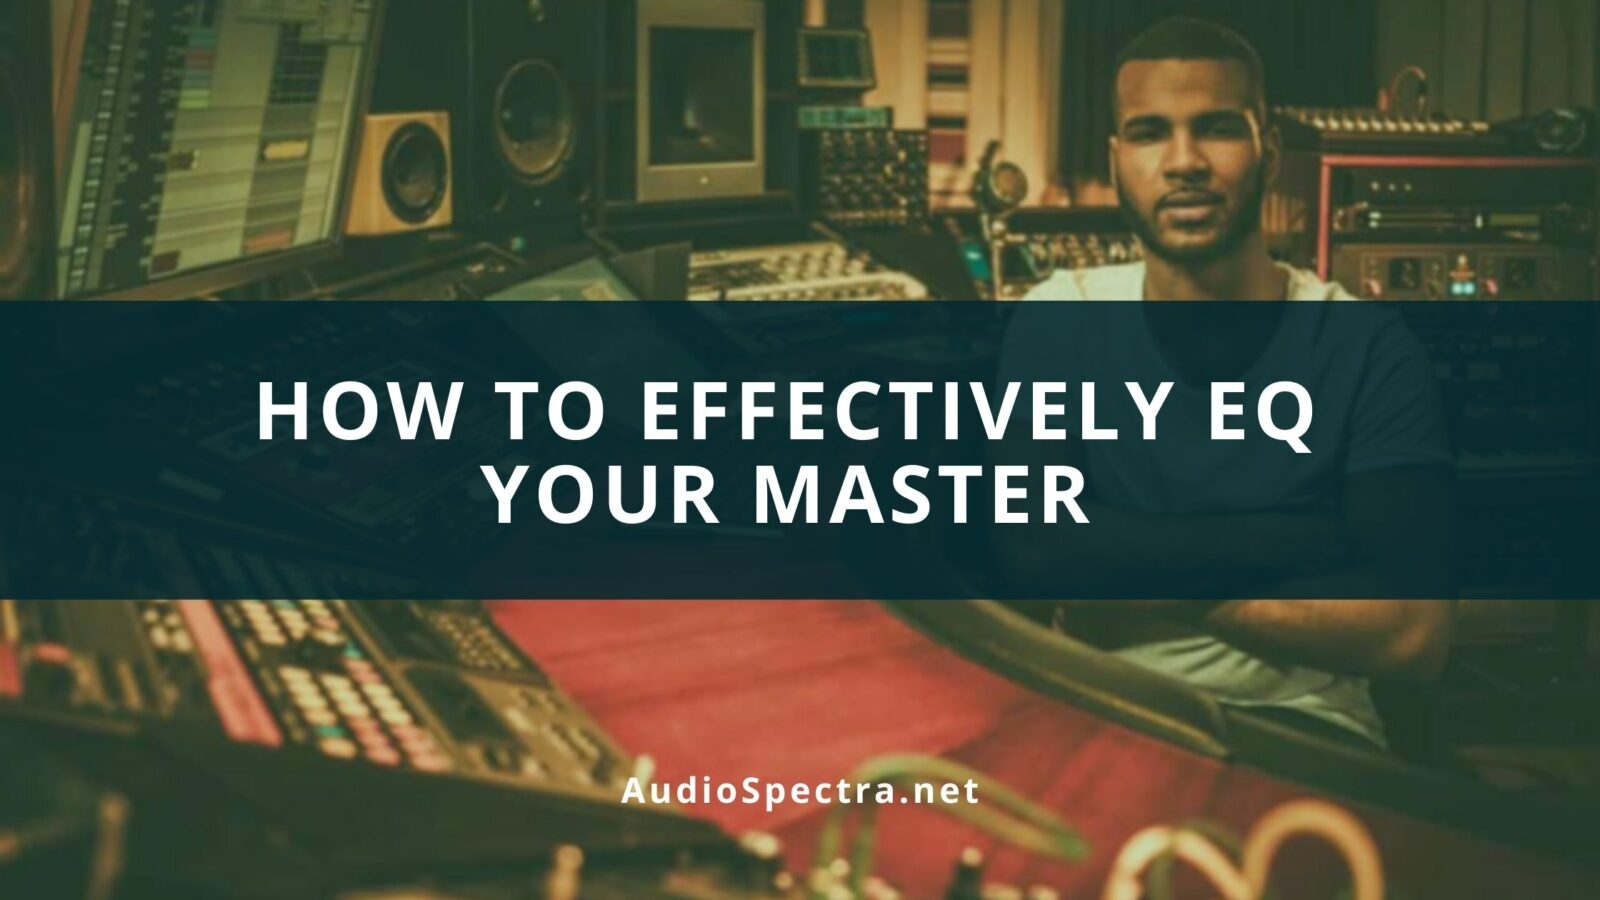 How to Effectively EQ Your Master